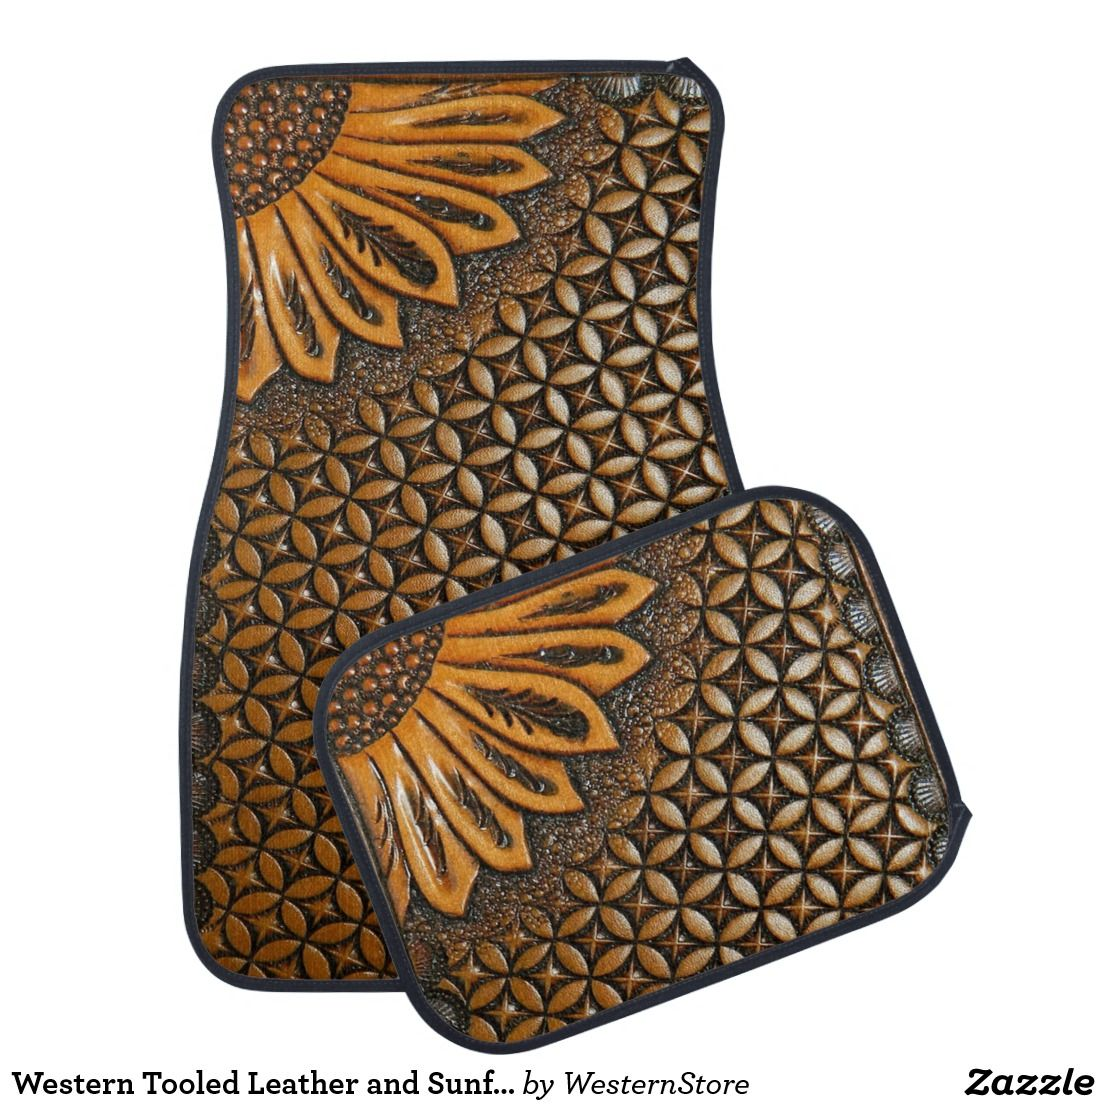 Western tooled leather and sunflower design car mat futuretruck